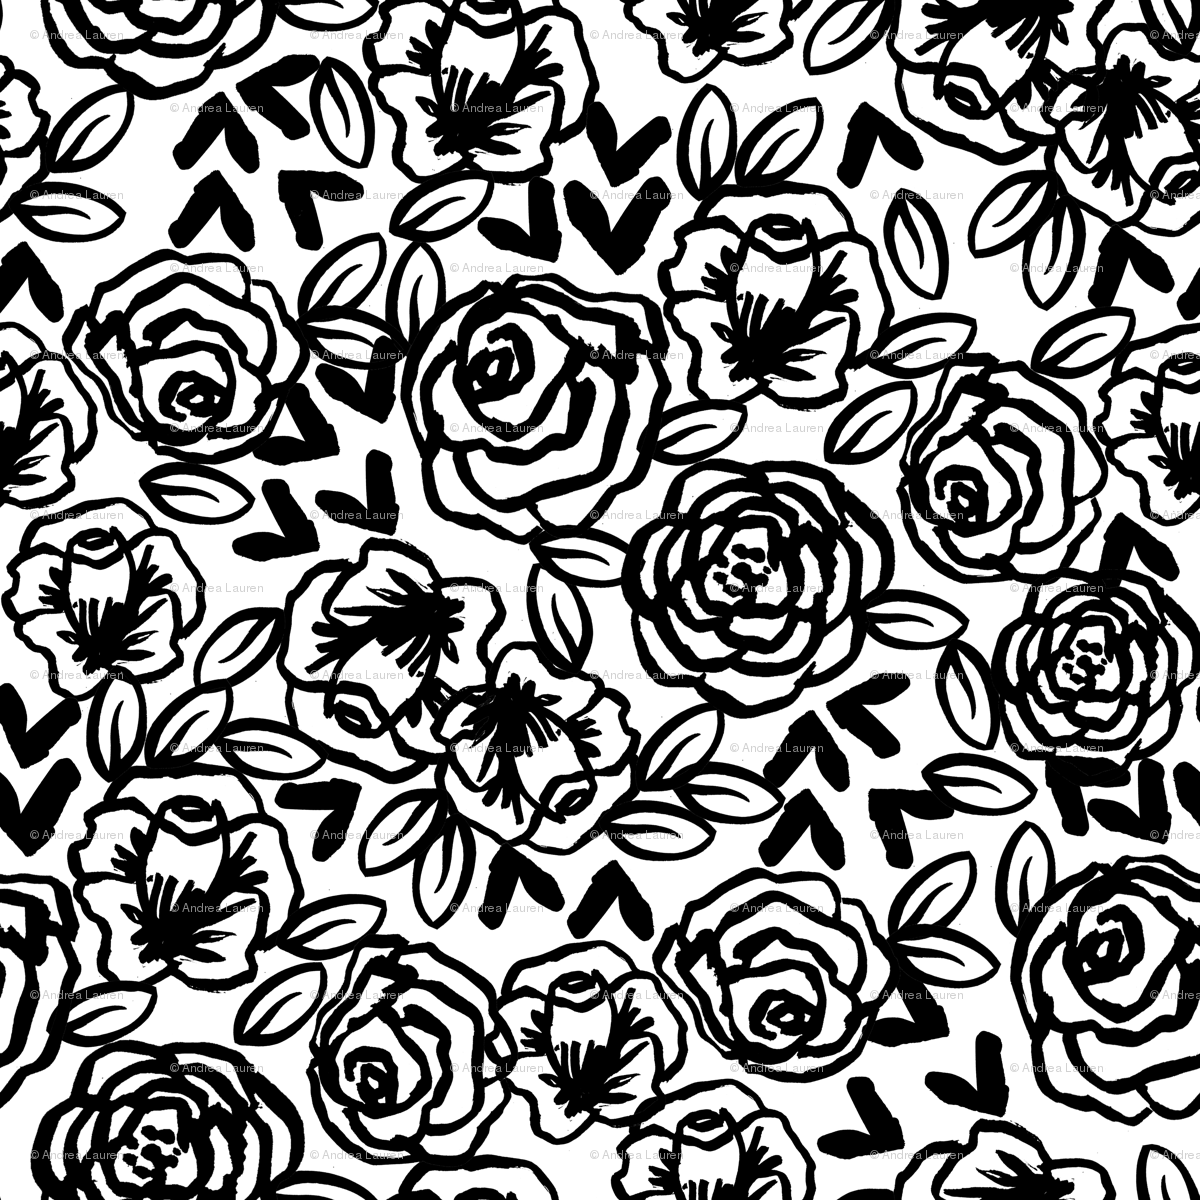 Roses Black And White Florals Flower Design For Illustration